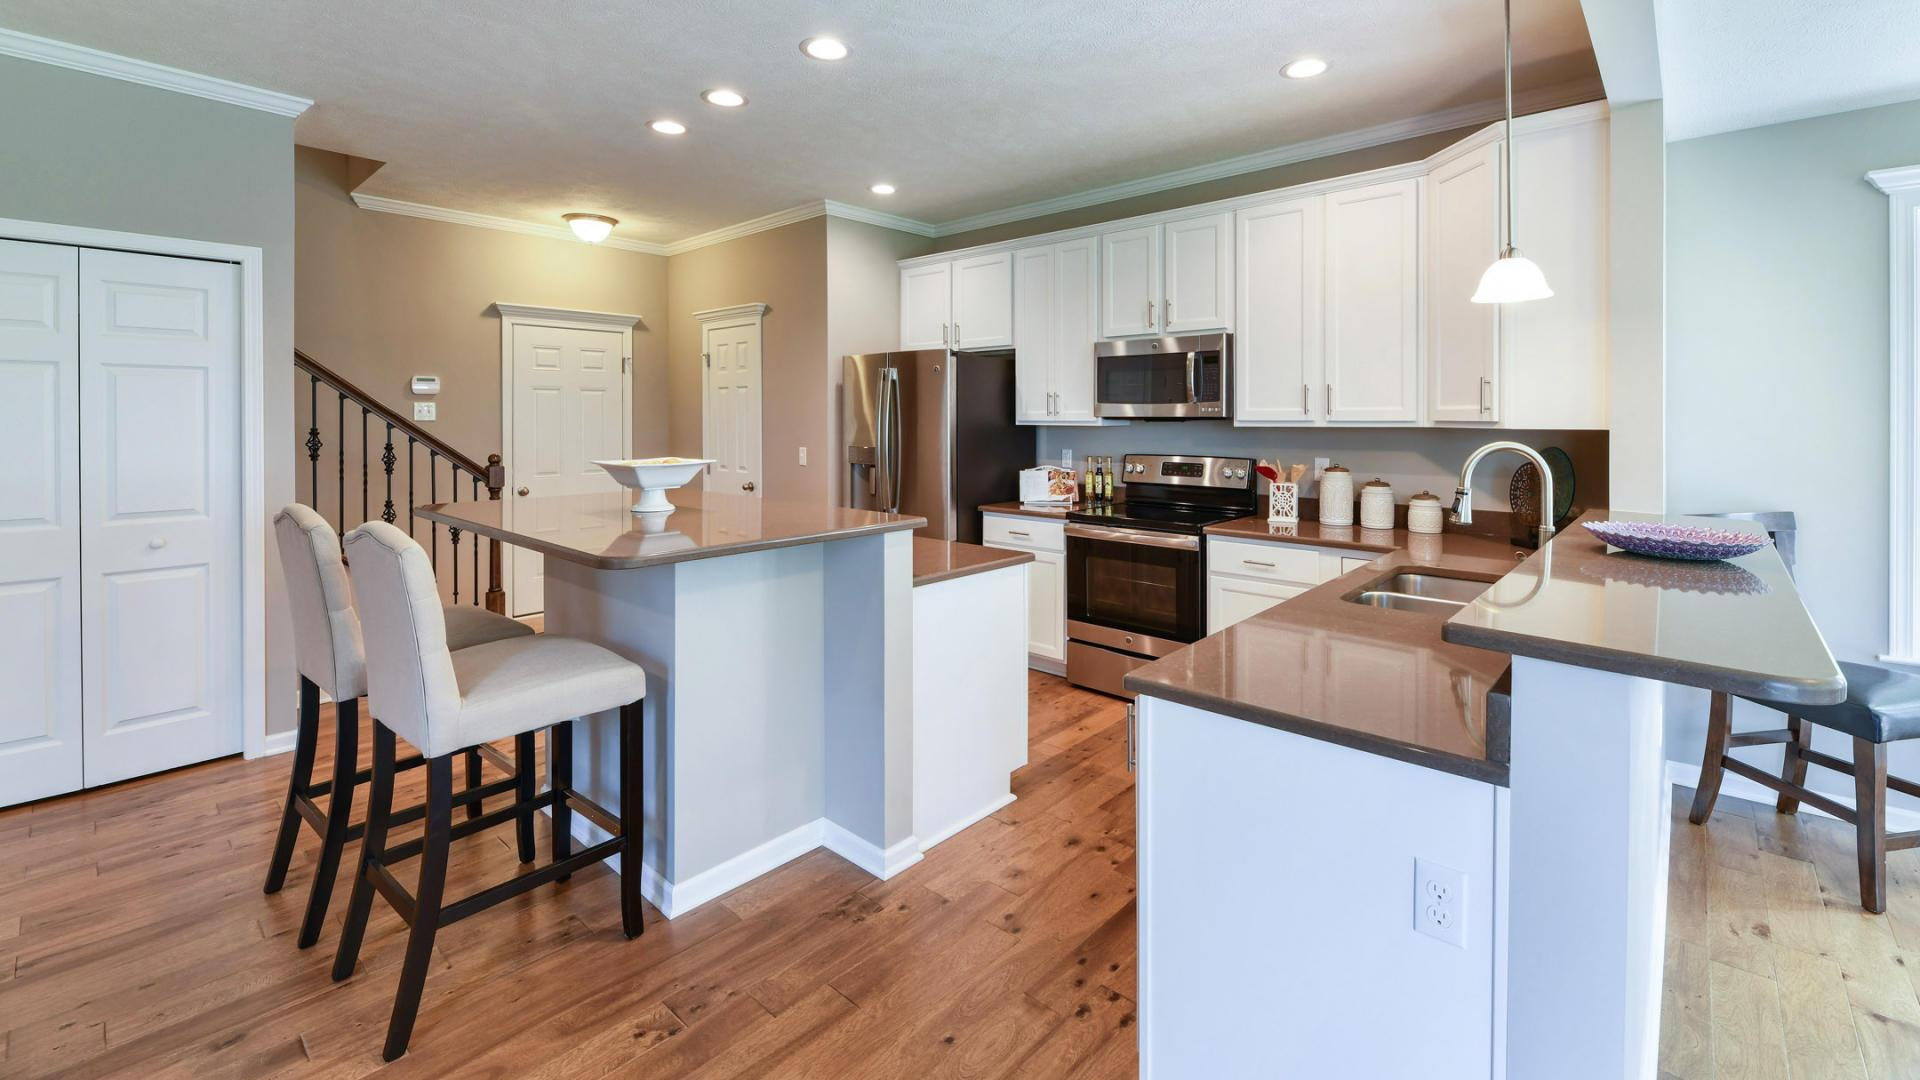 Kitchen featured in the Rockford By Maronda Homes in Pittsburgh, PA